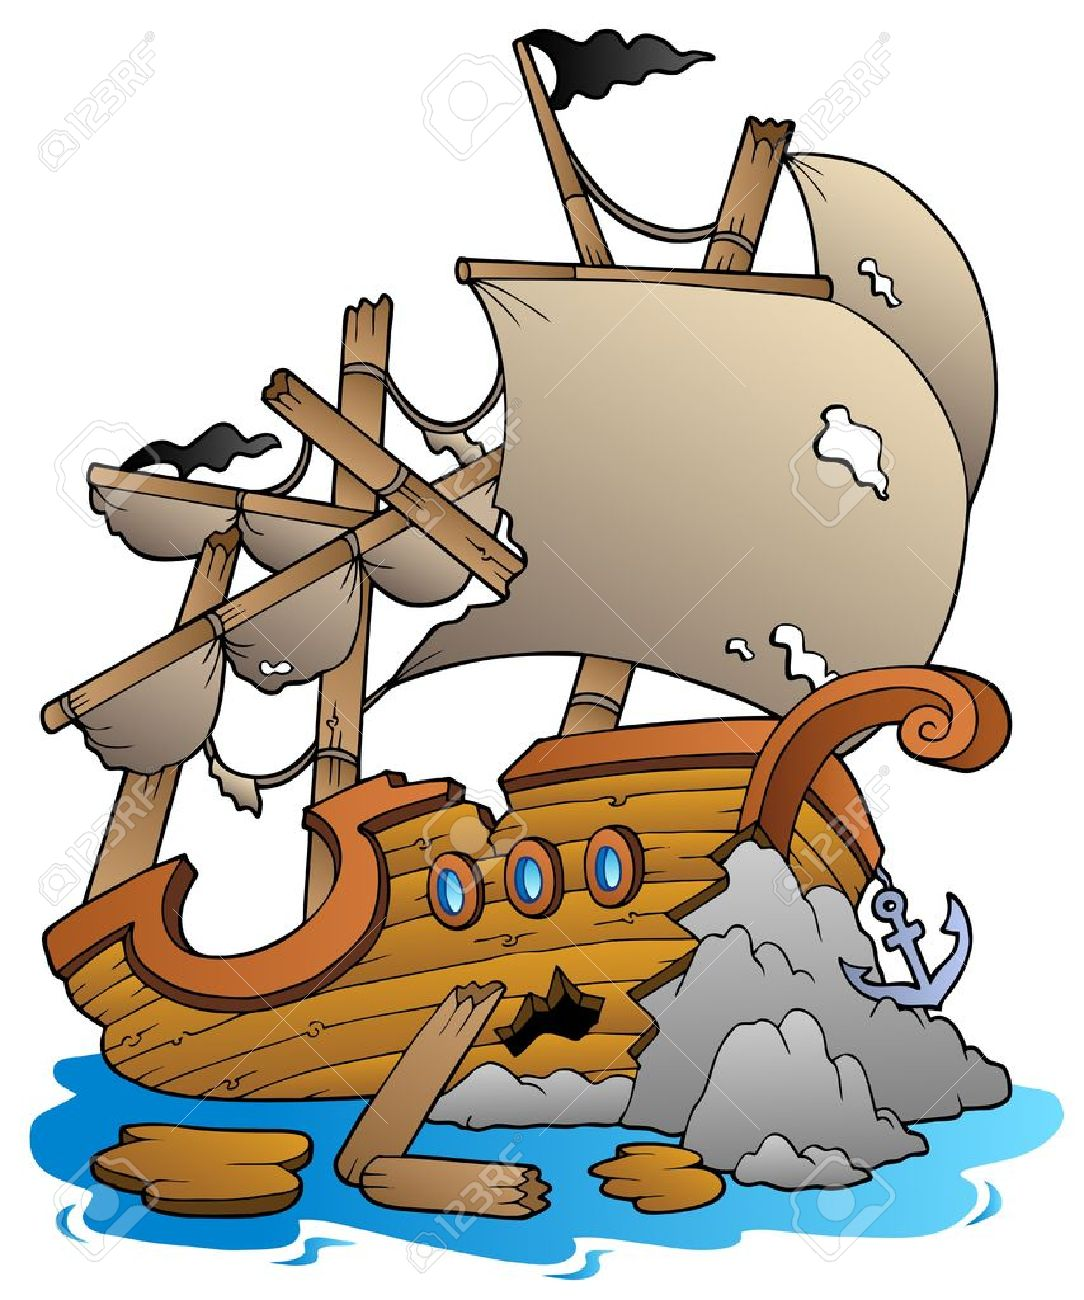 shipwreck with rocks vector illustration royalty free cliparts rh 123rf com shipwreck clip art free shipwreck clipart free